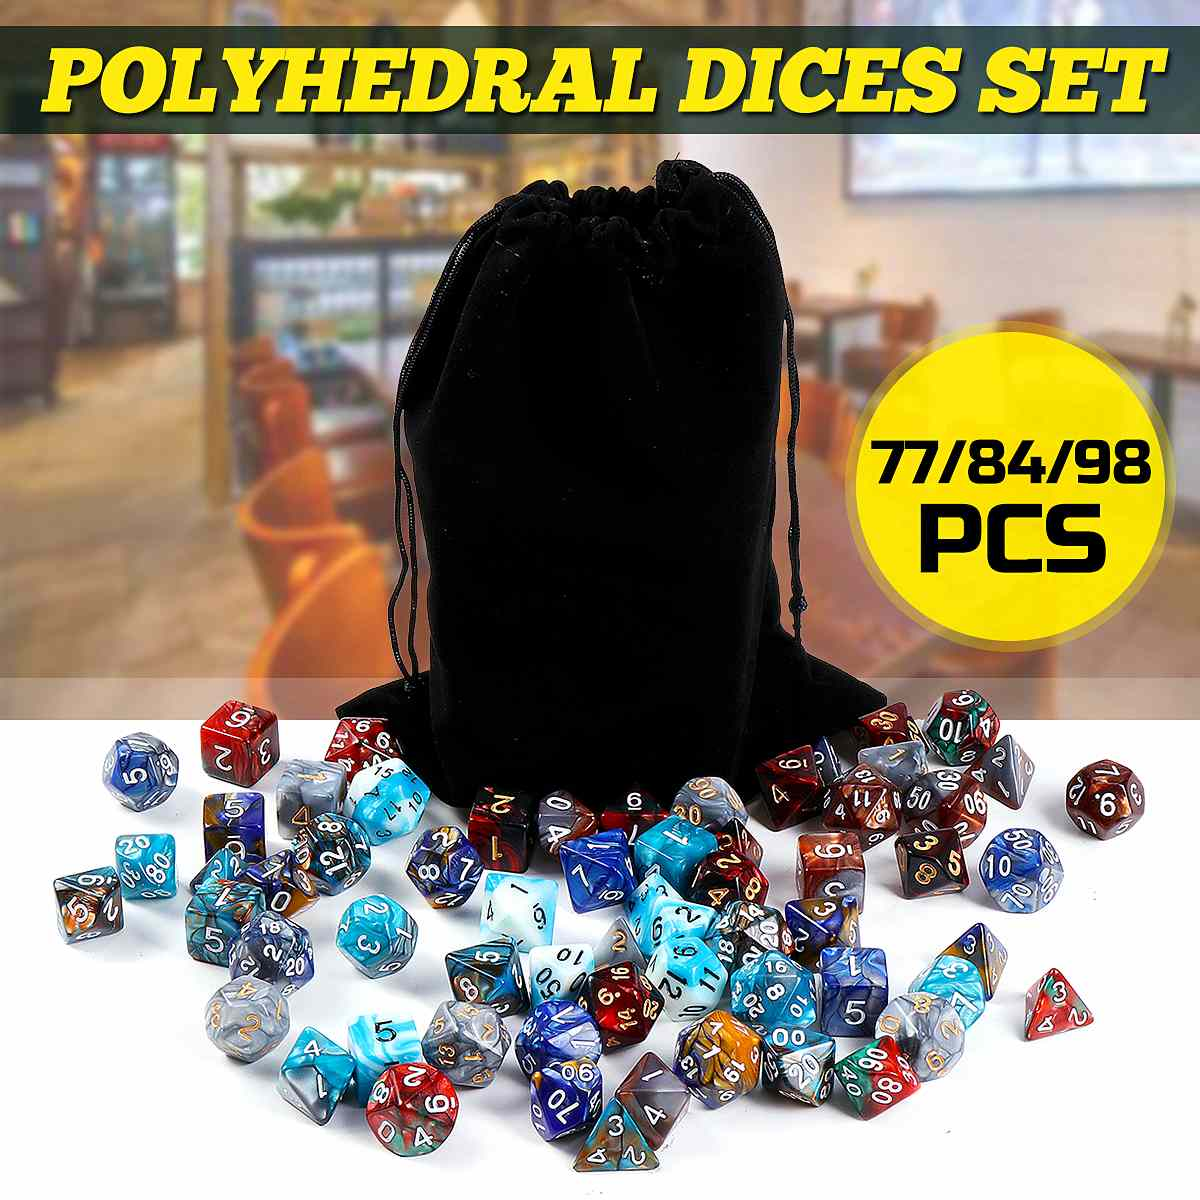 77/84/98Pcs Polyhedral Dice Set DND RPG MTG Dungeons And Dragons Board Games Role Playing D4-D20 Mixed Color Set + Storage Bags